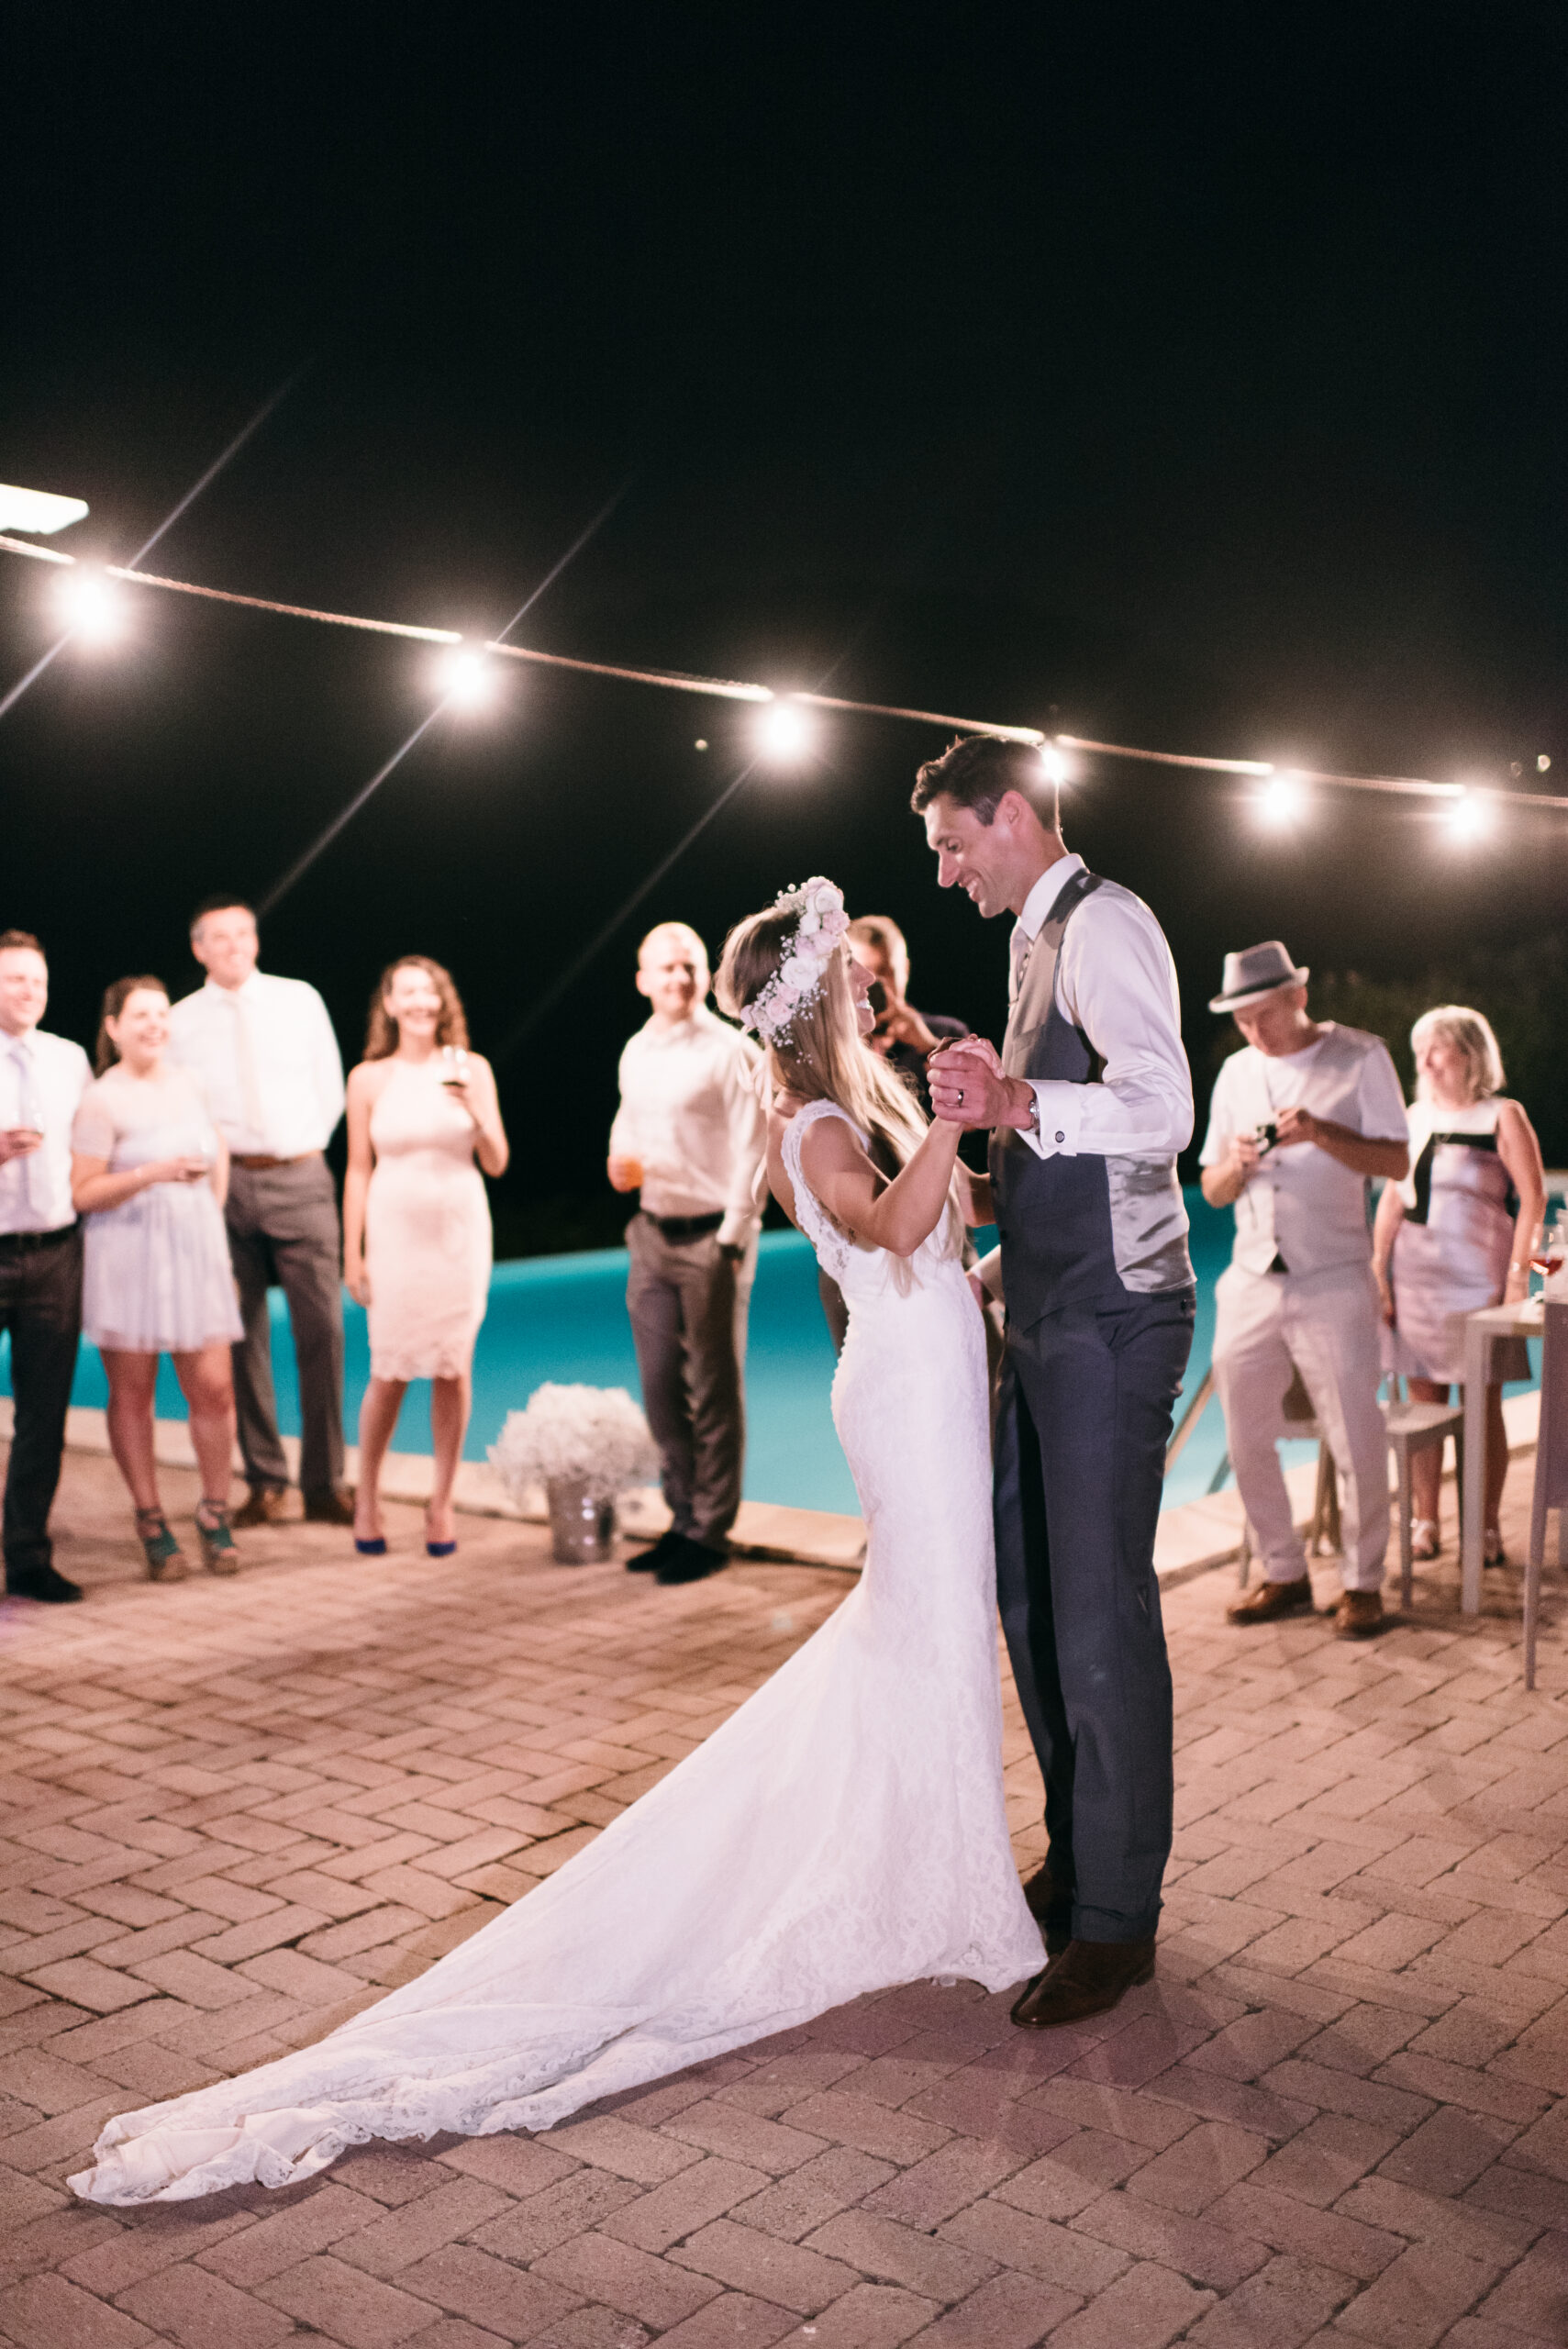 Wedding couple dancing by the pool side